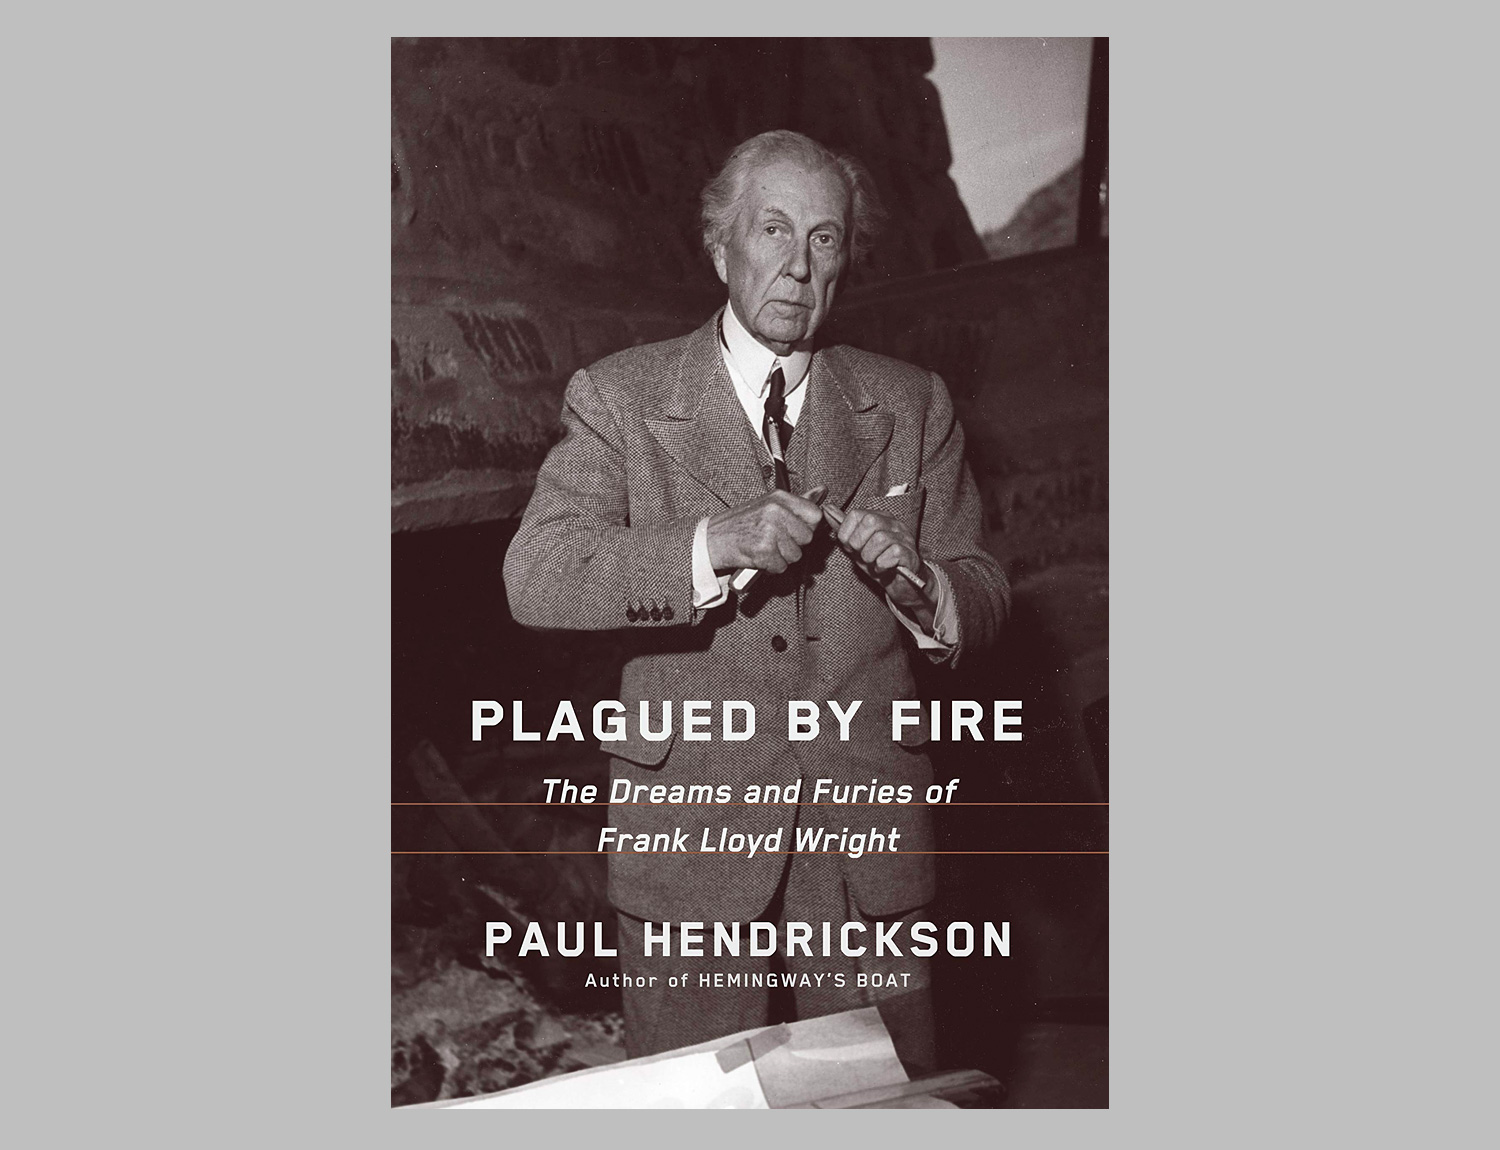 Plagued by Fire: The Dreams and Furies of Frank Lloyd Wright at werd.com